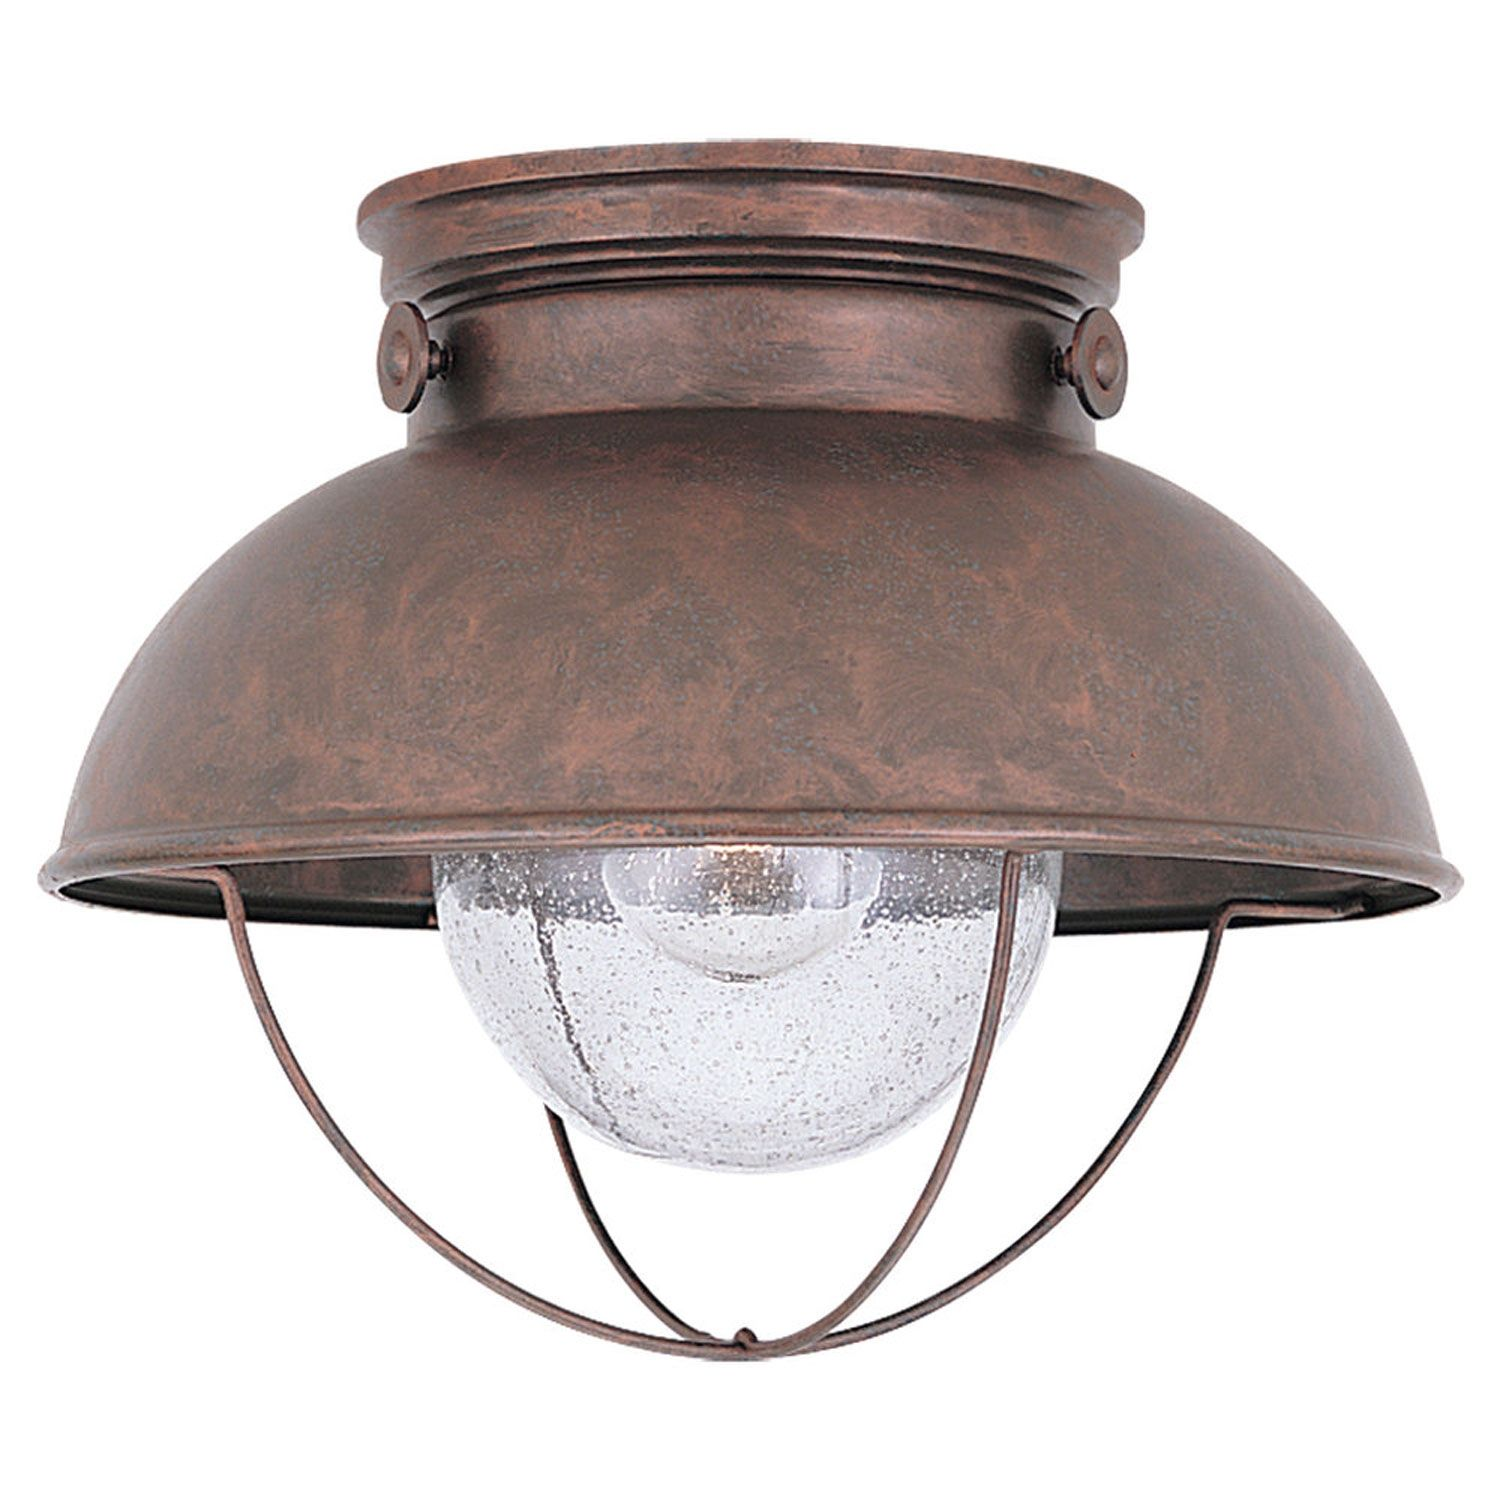 Ceiling mount exterior light fixtures http ceiling mount exterior light fixtures arubaitofo Choice Image